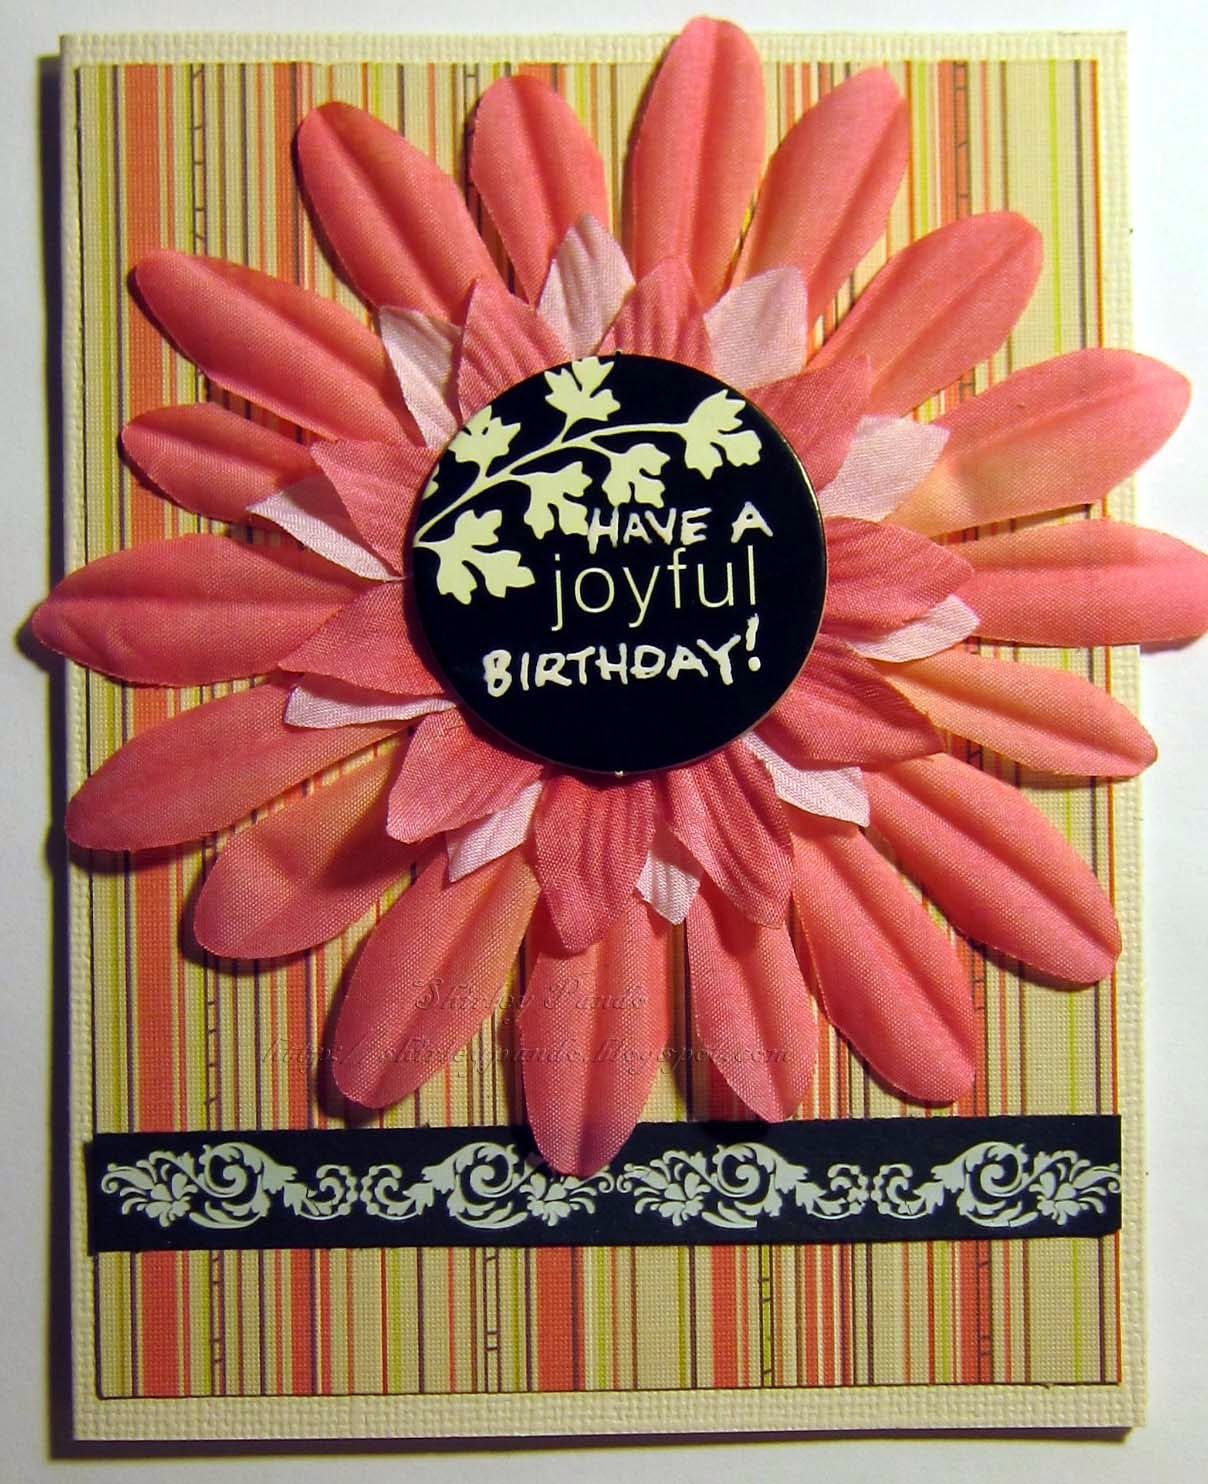 Have a Joyful Birthday card